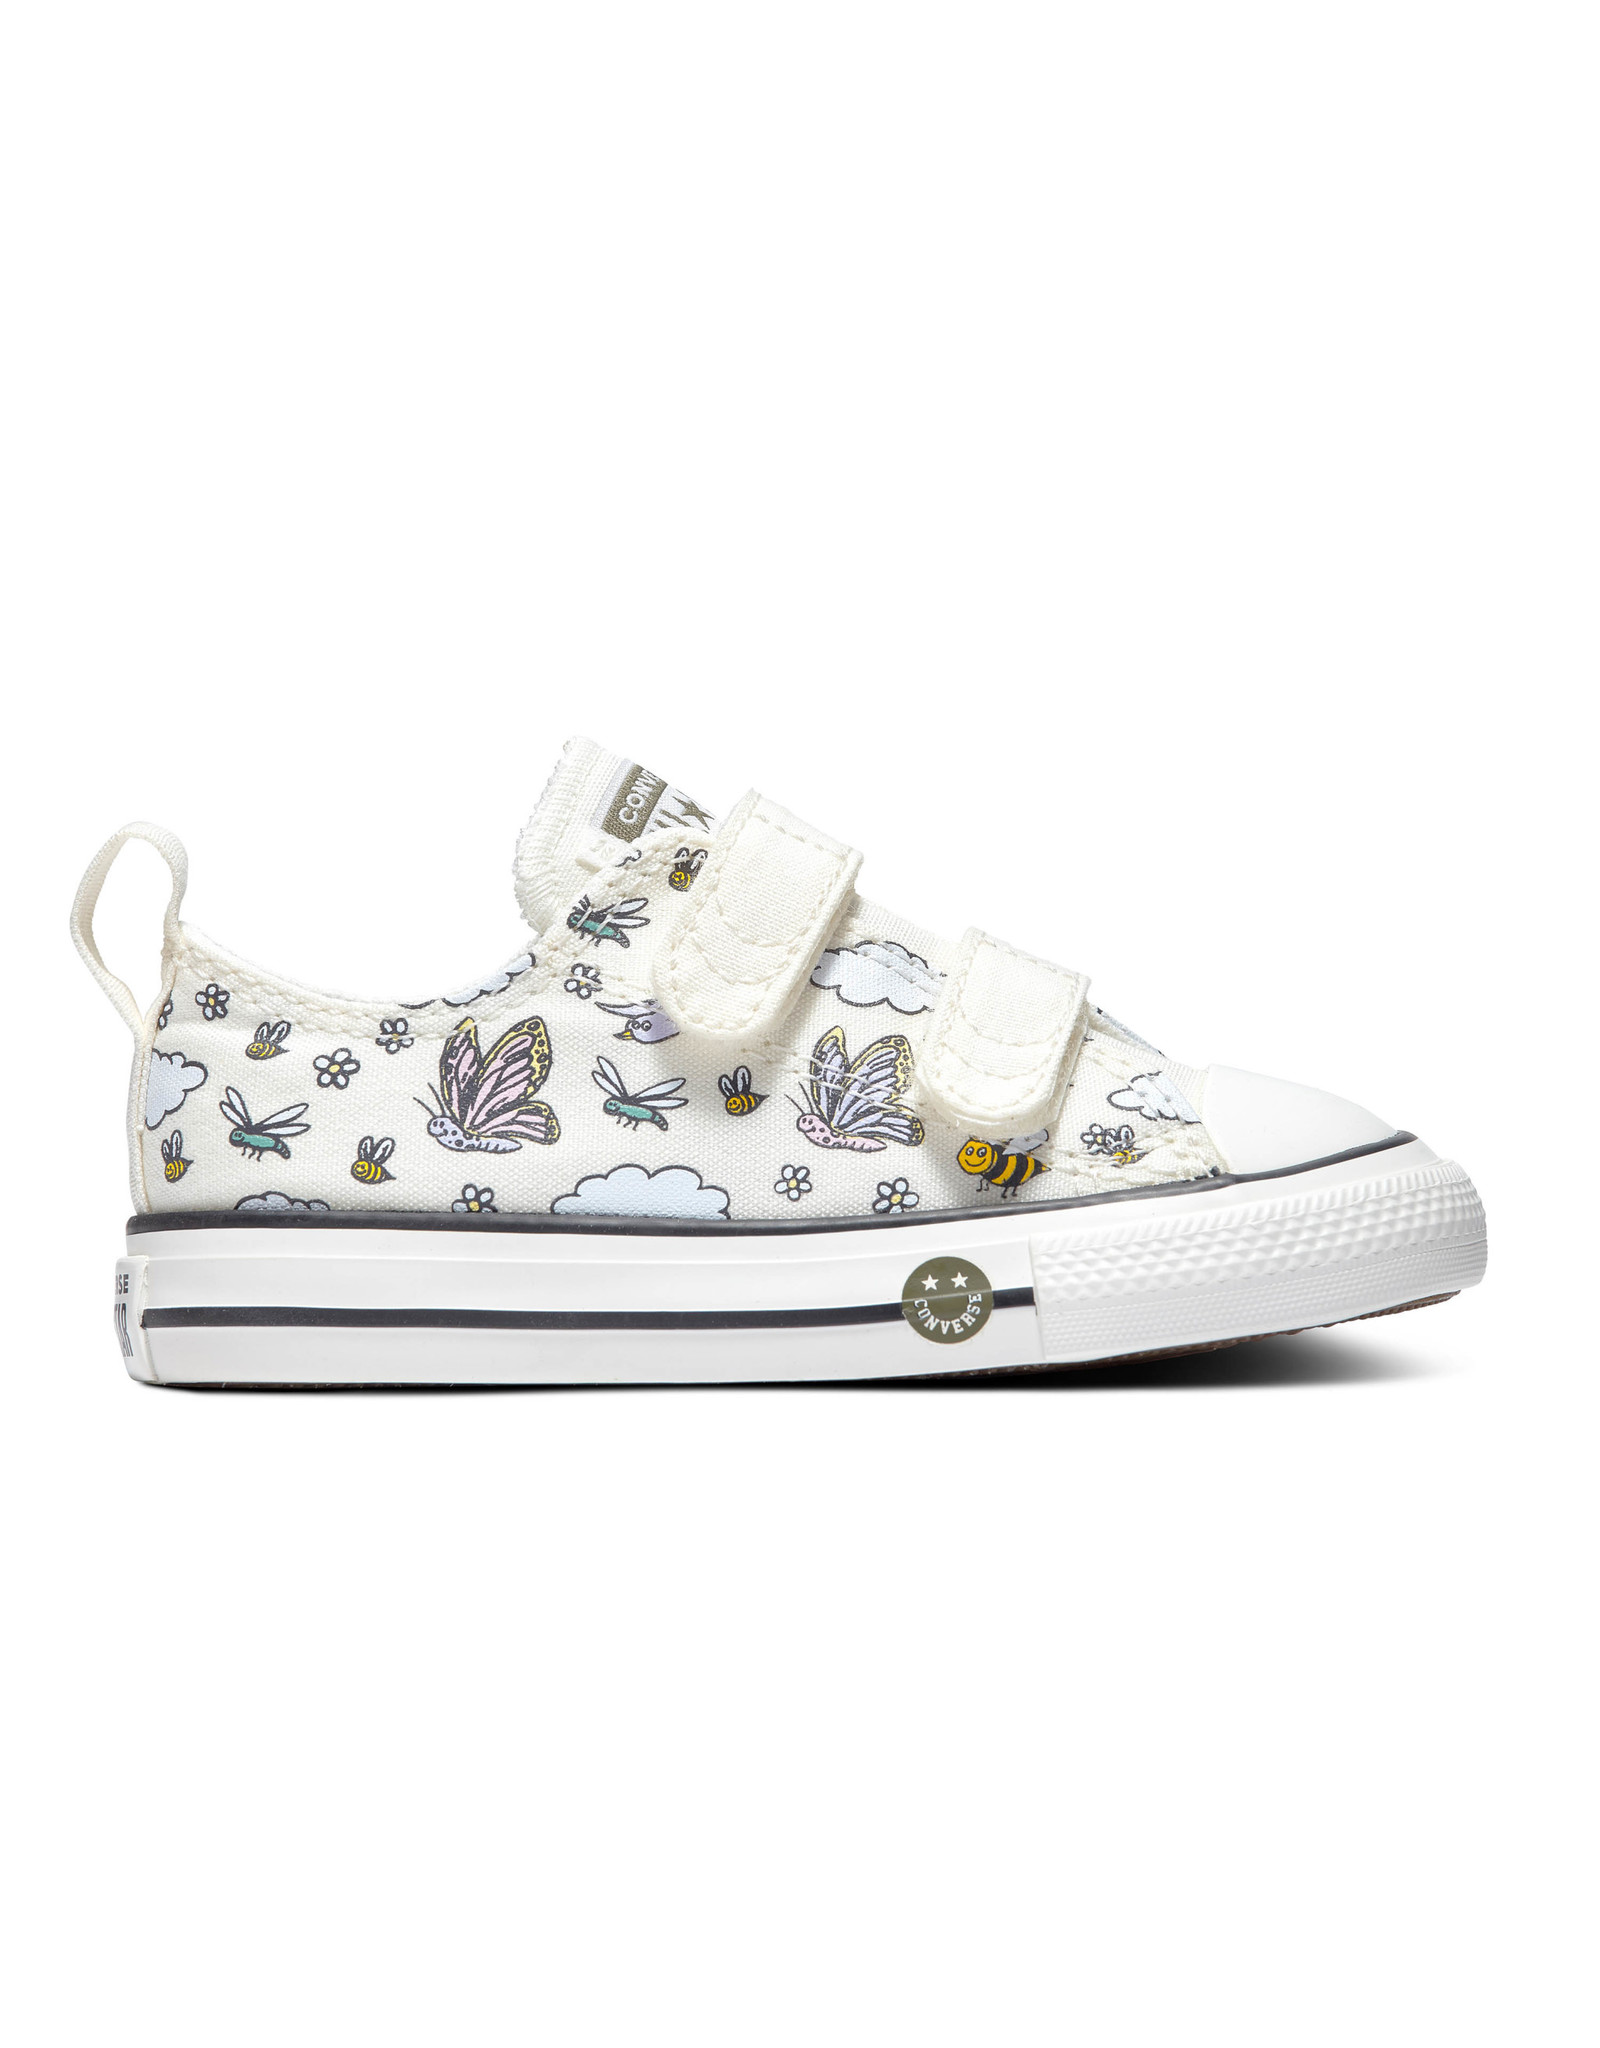 CONVERSE CHUCK TAYLOR AS 2V OX VINTAGE WHITE CLAMPI-767899C